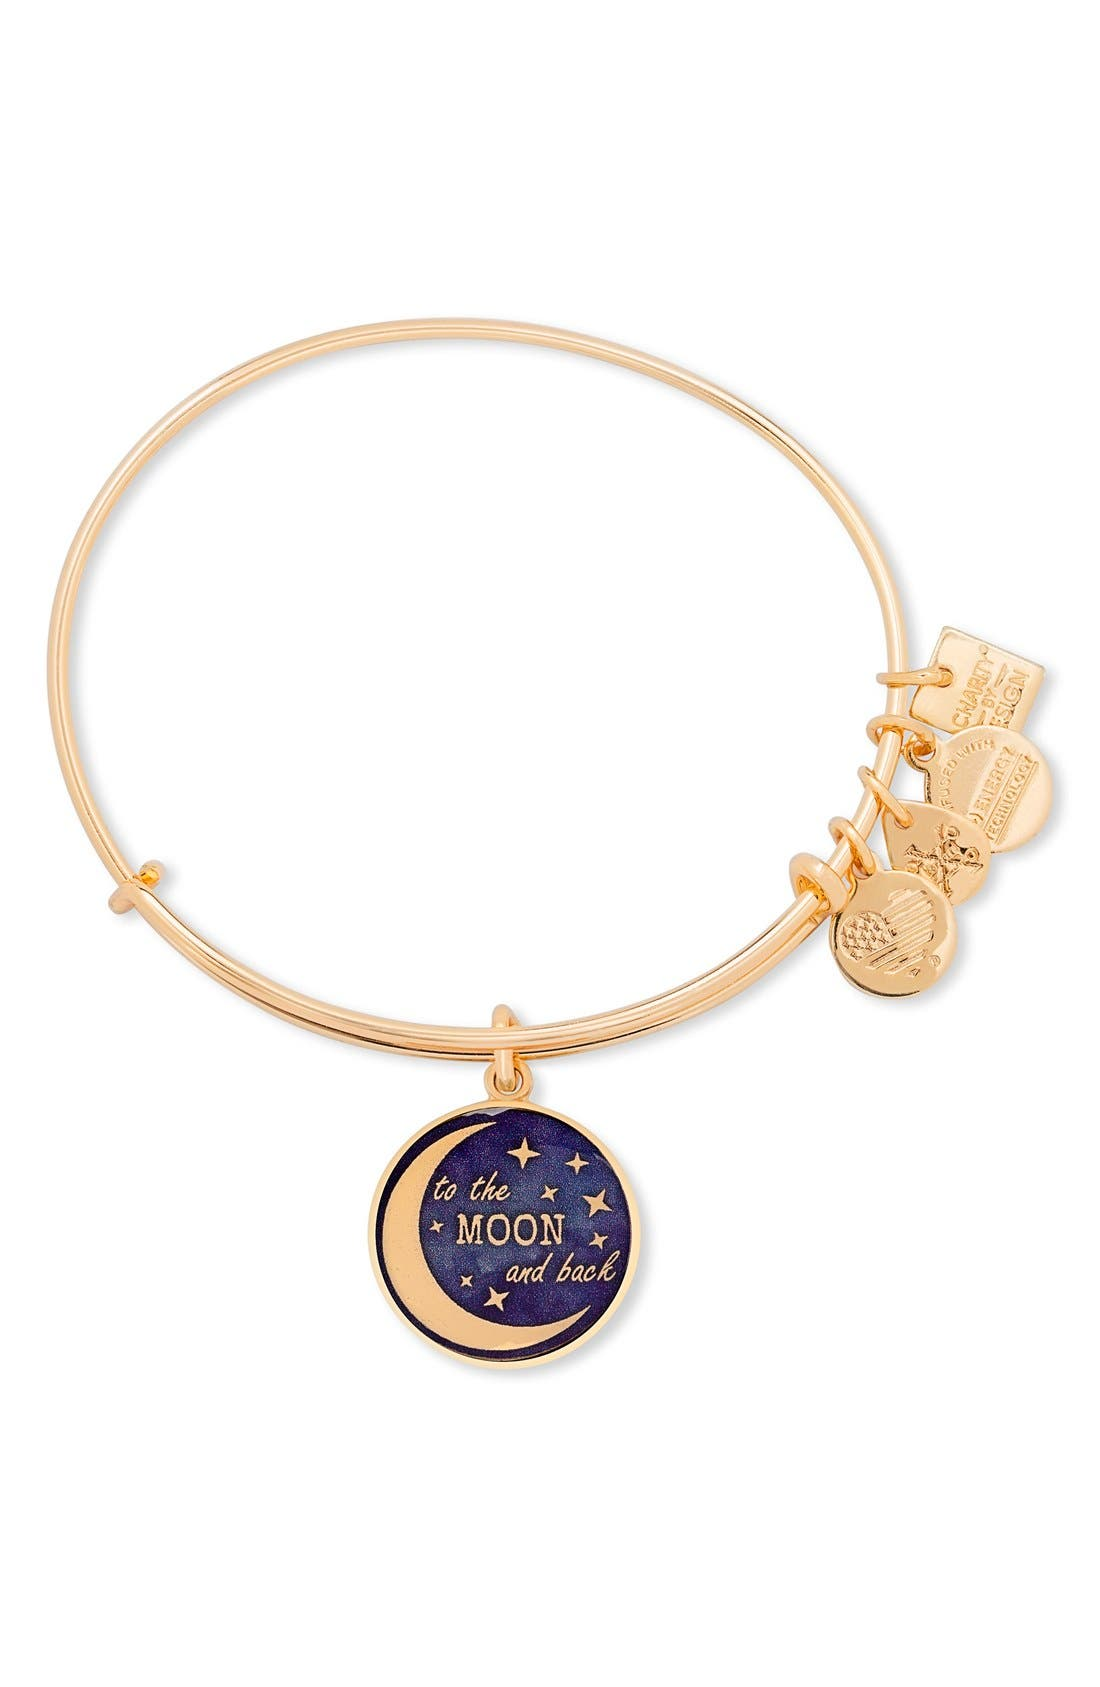 Main Image - Alex and Ani Stellar Love 'To the Moon and Back' Adjustable Wire Bangle